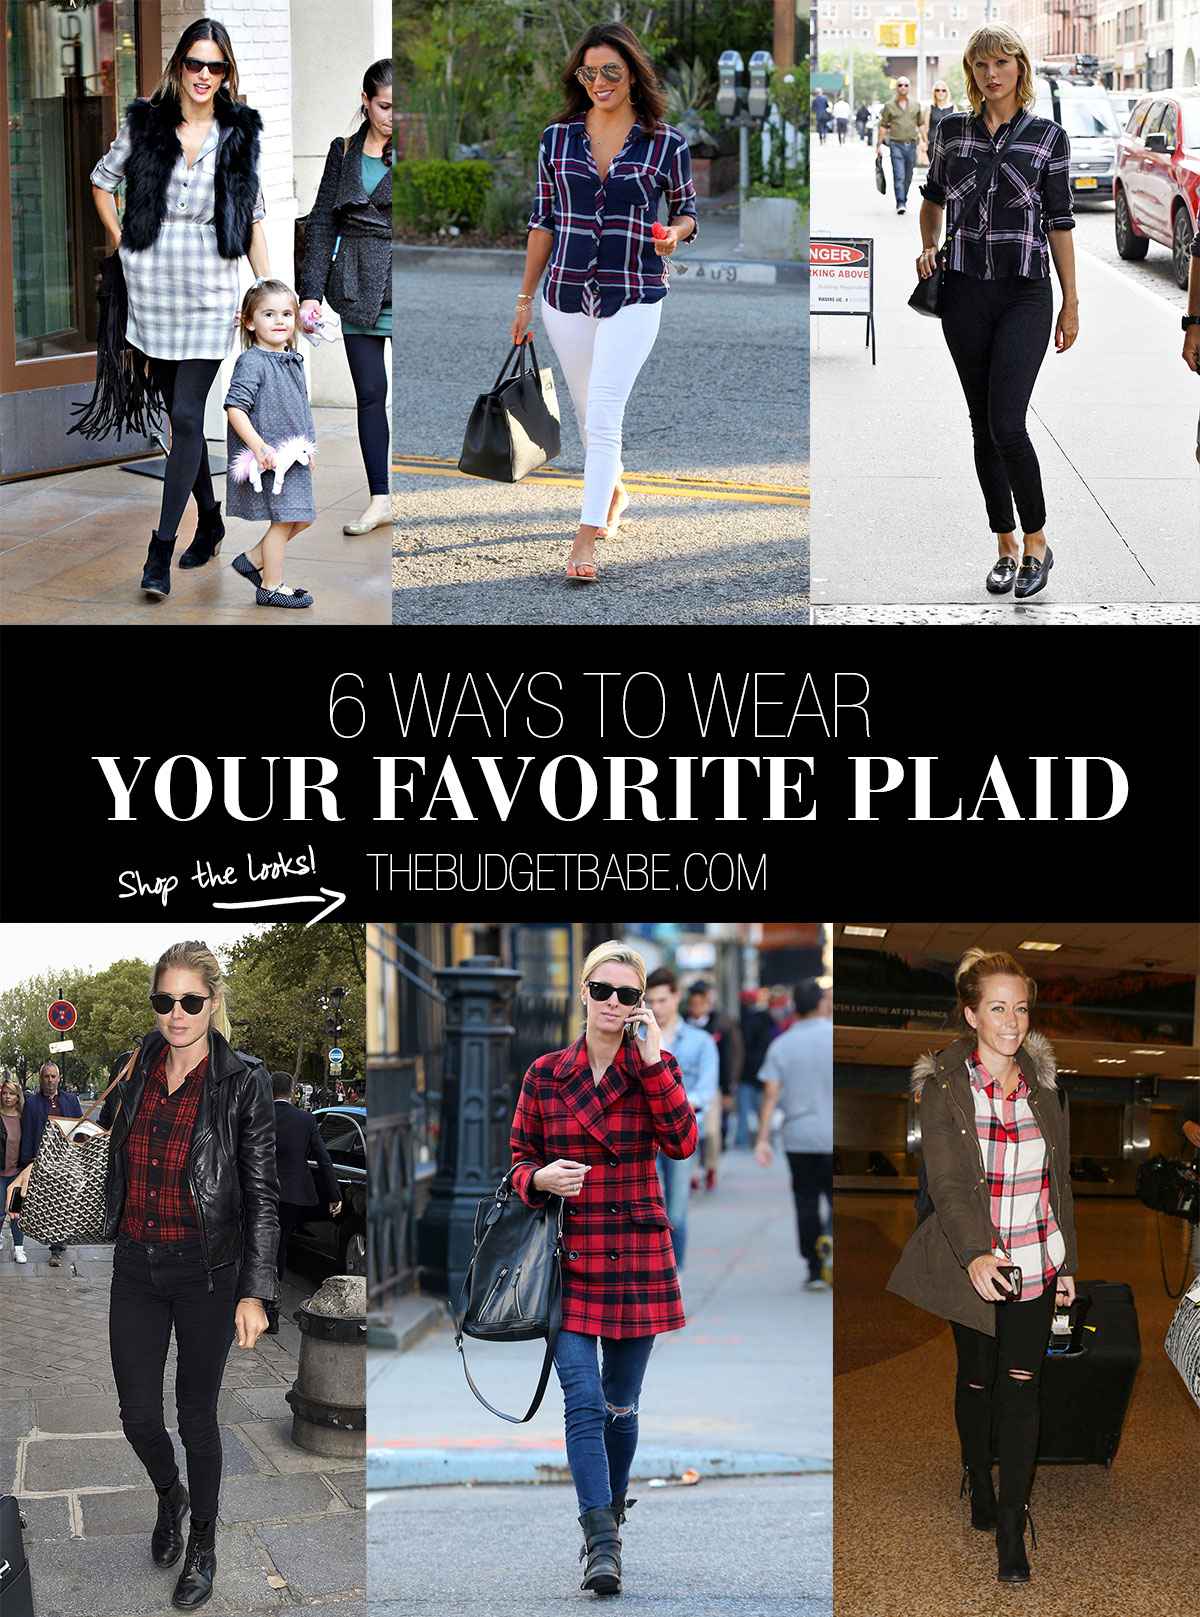 Here's how to wear plaid 6 ways inspired by your favorite celebs.